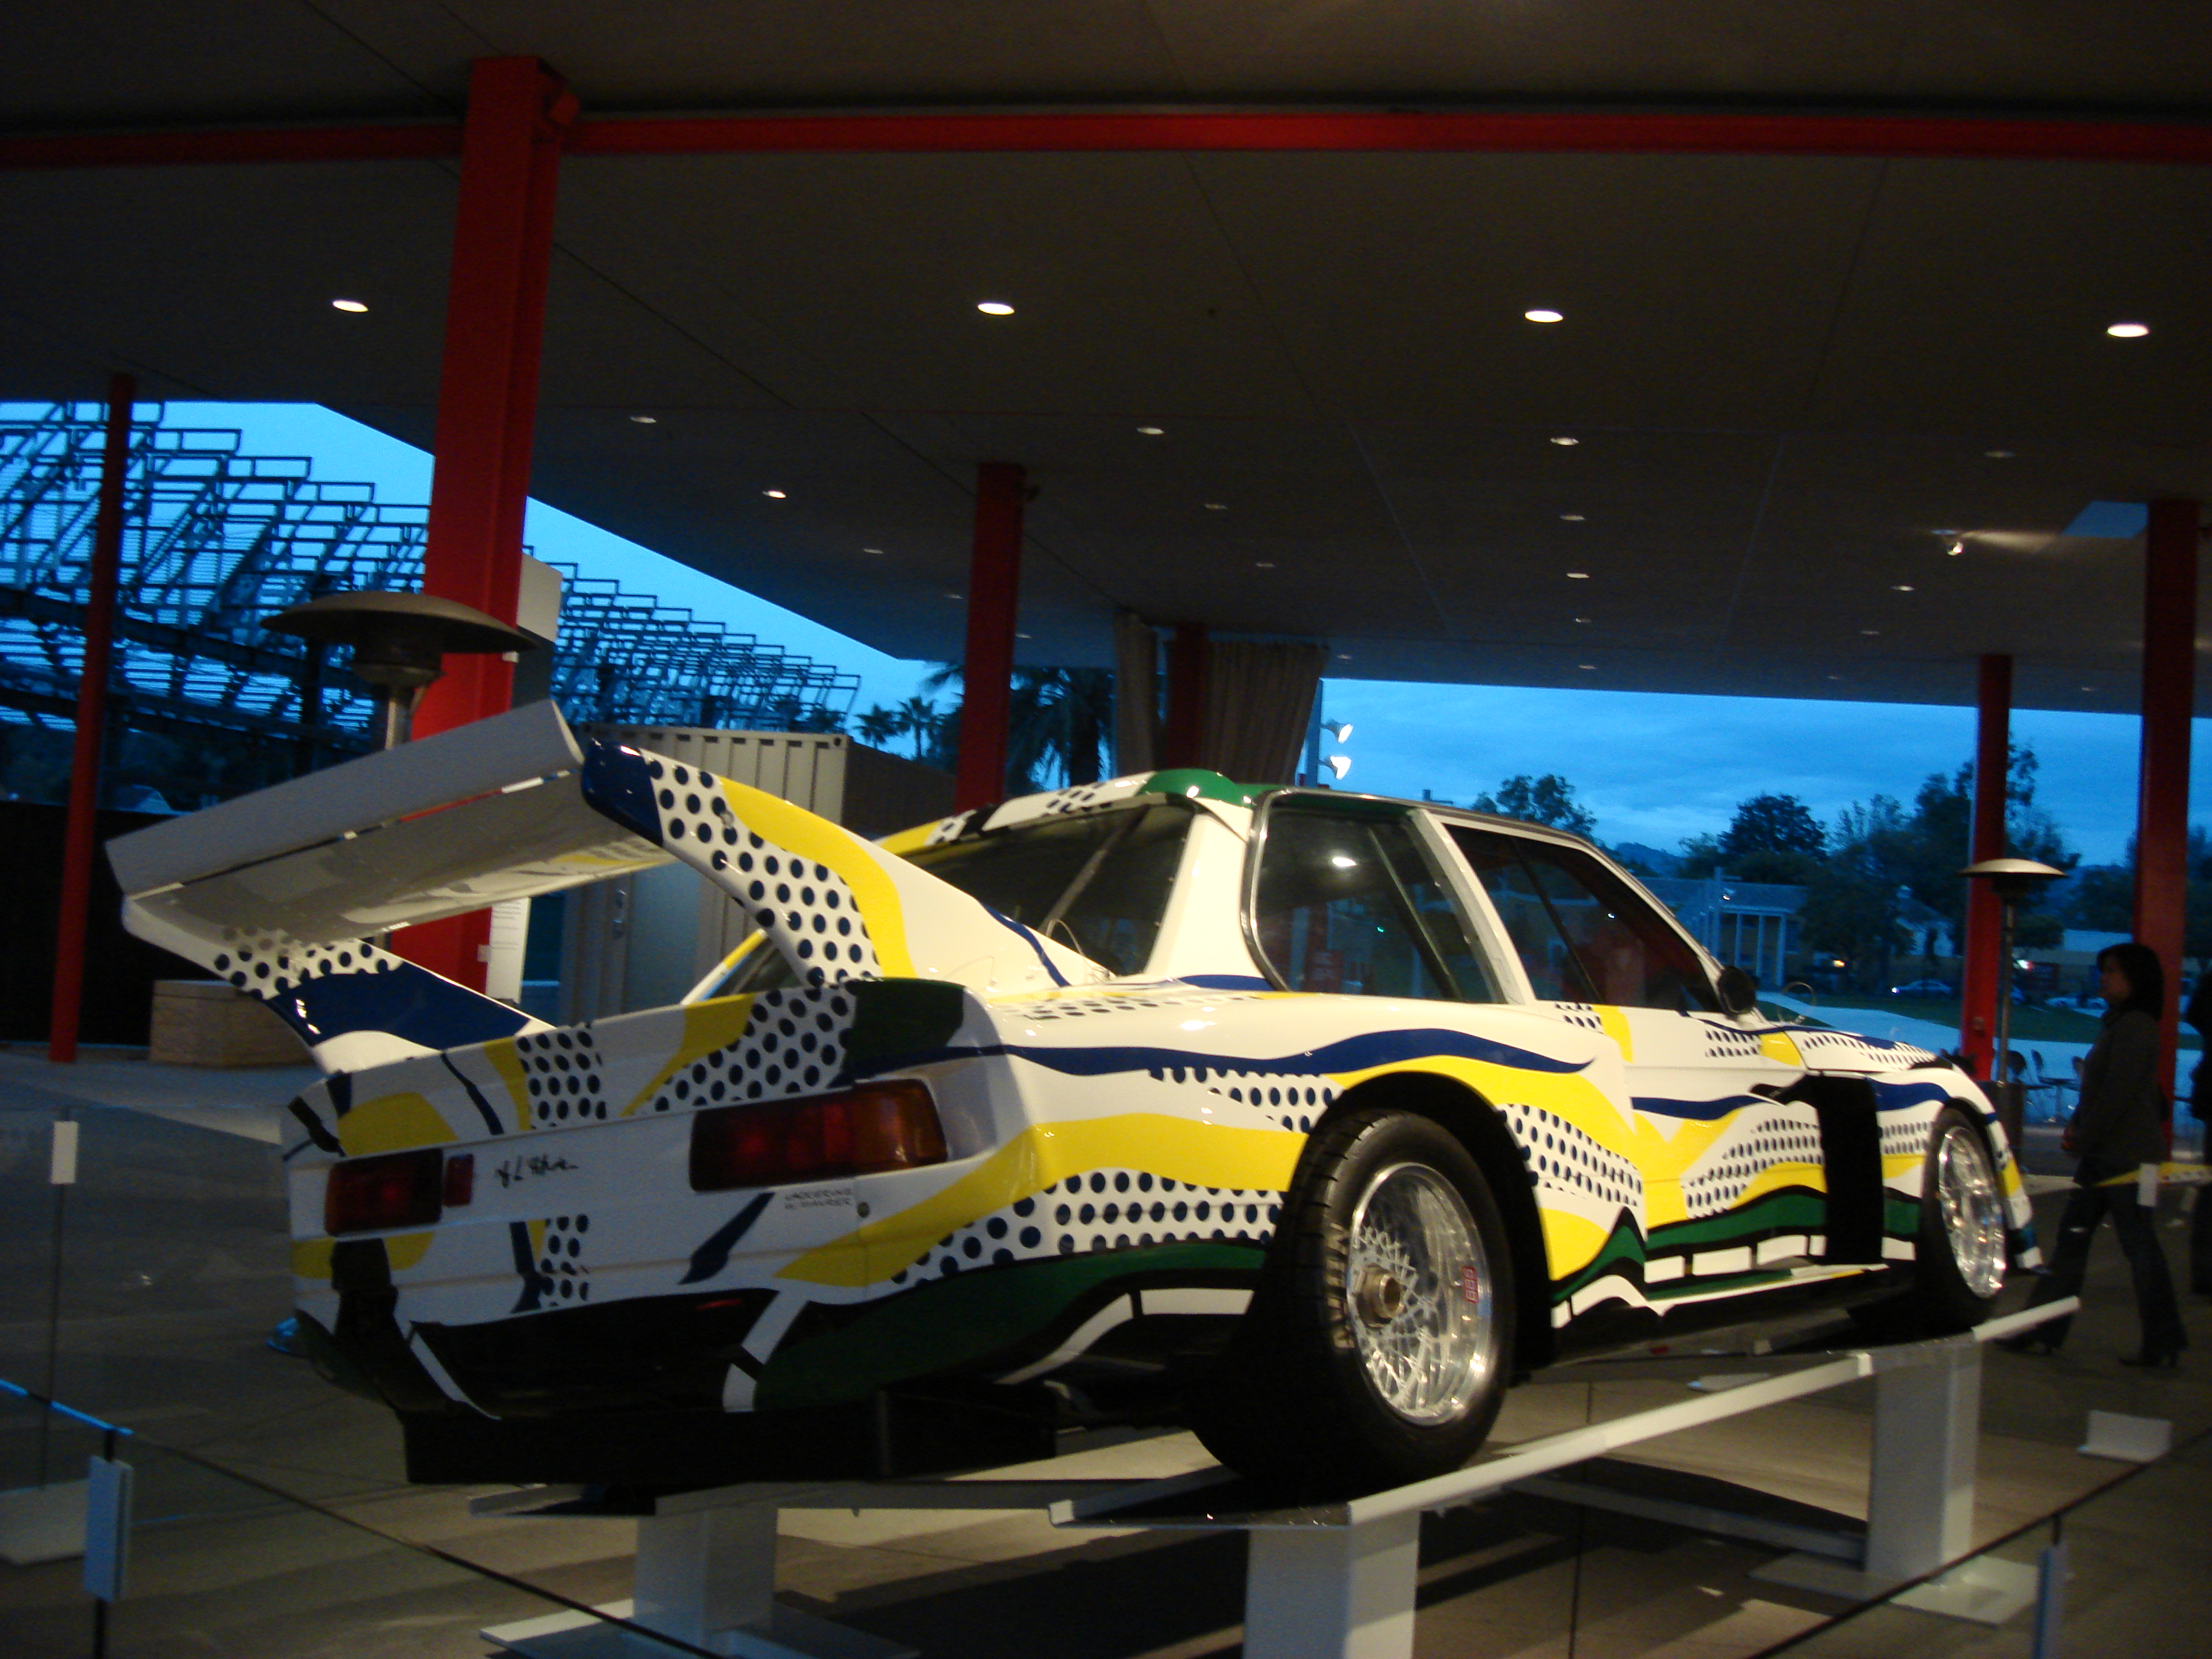 BMW 320i Art Car - Roy Lichtenstein 1977 | Flickr - Photo Sharing!